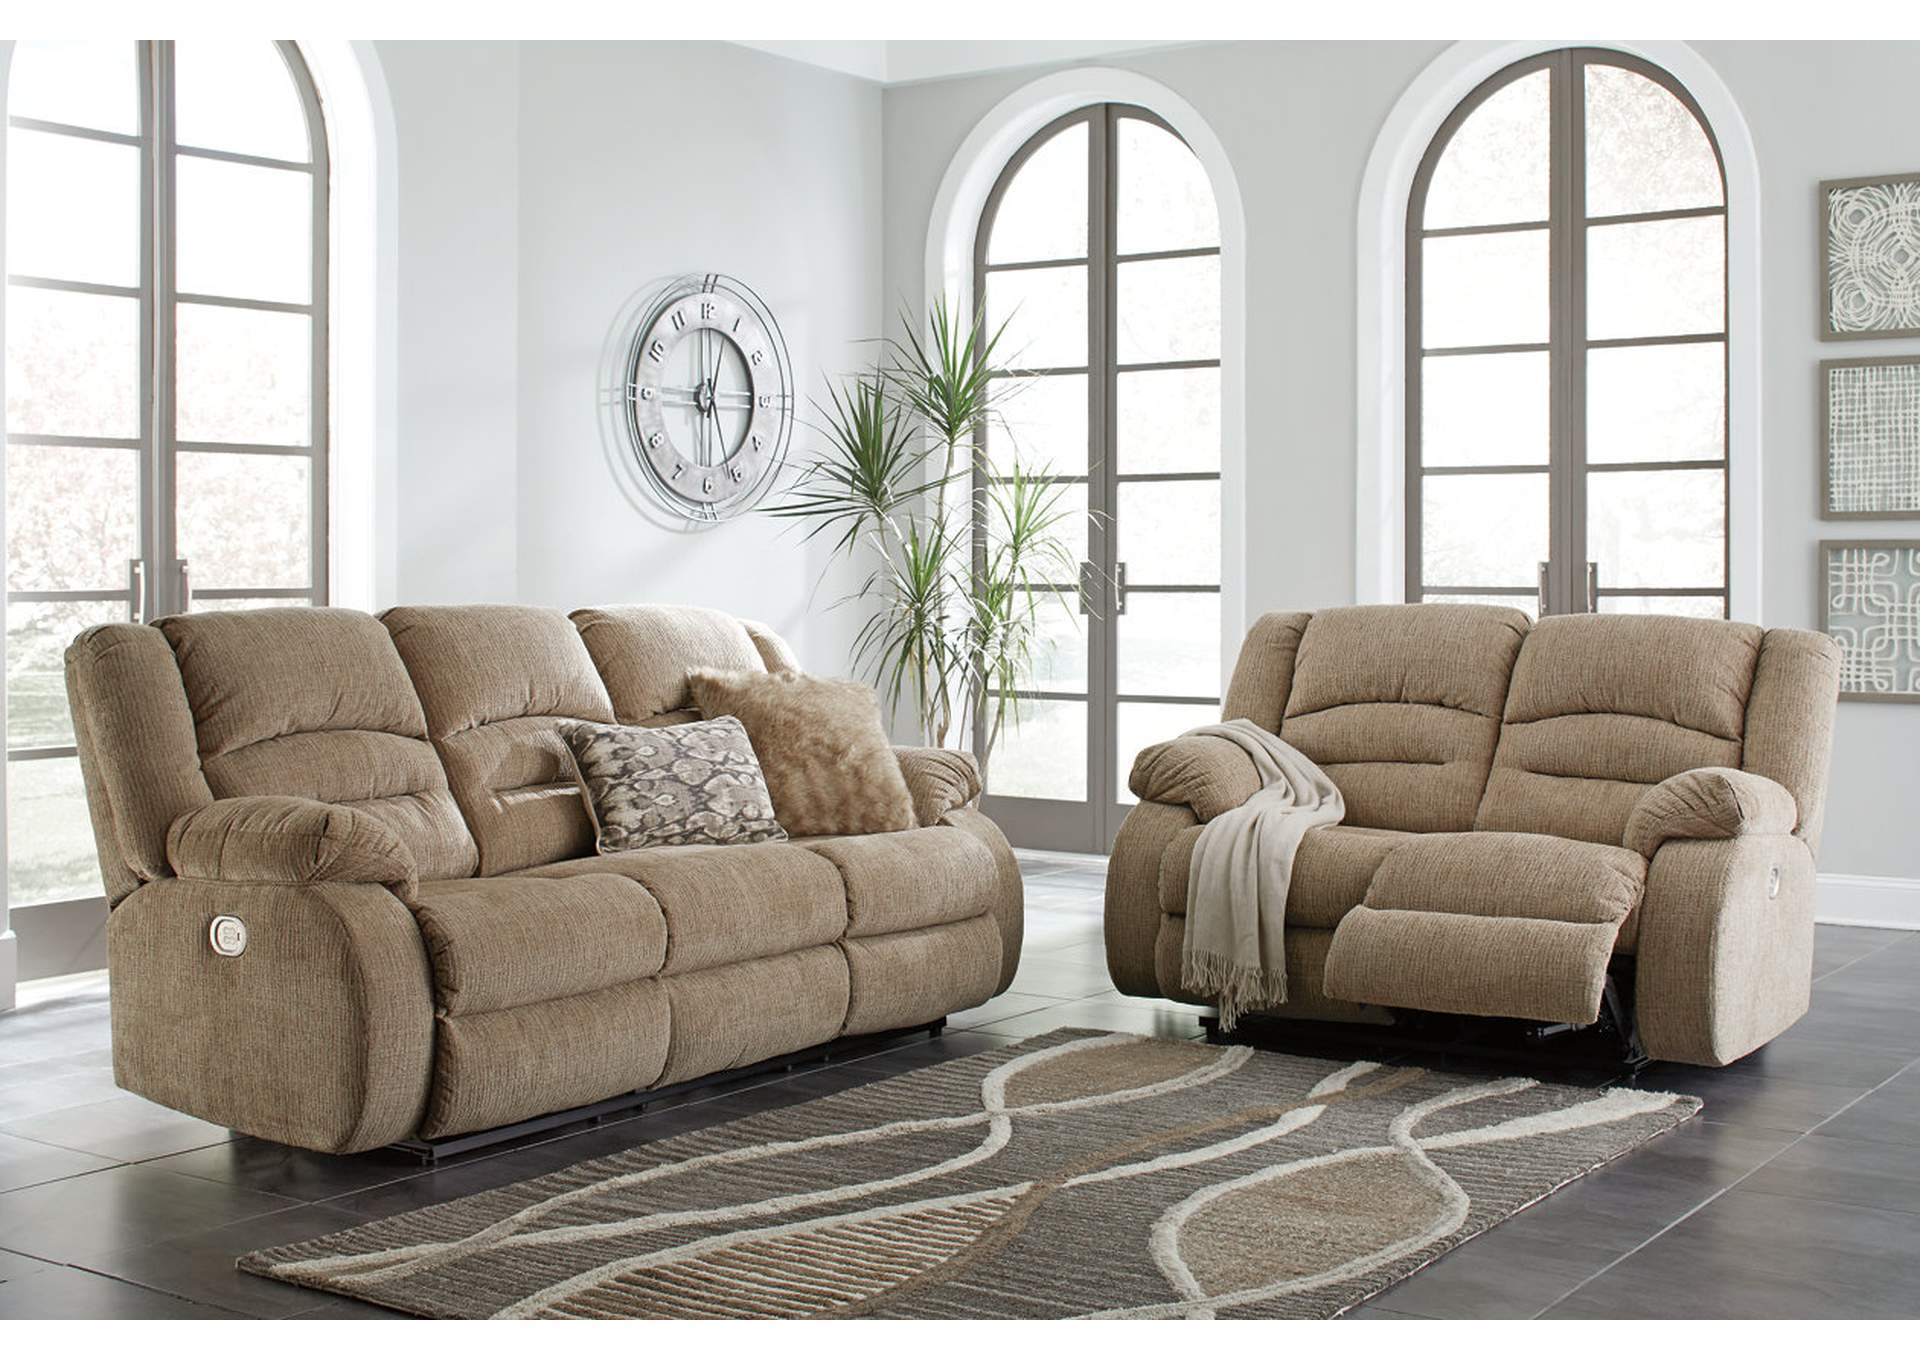 Labarre Mocha Power Reclining Sofa and Loveseat with ADJ Headrest,Signature Design By Ashley